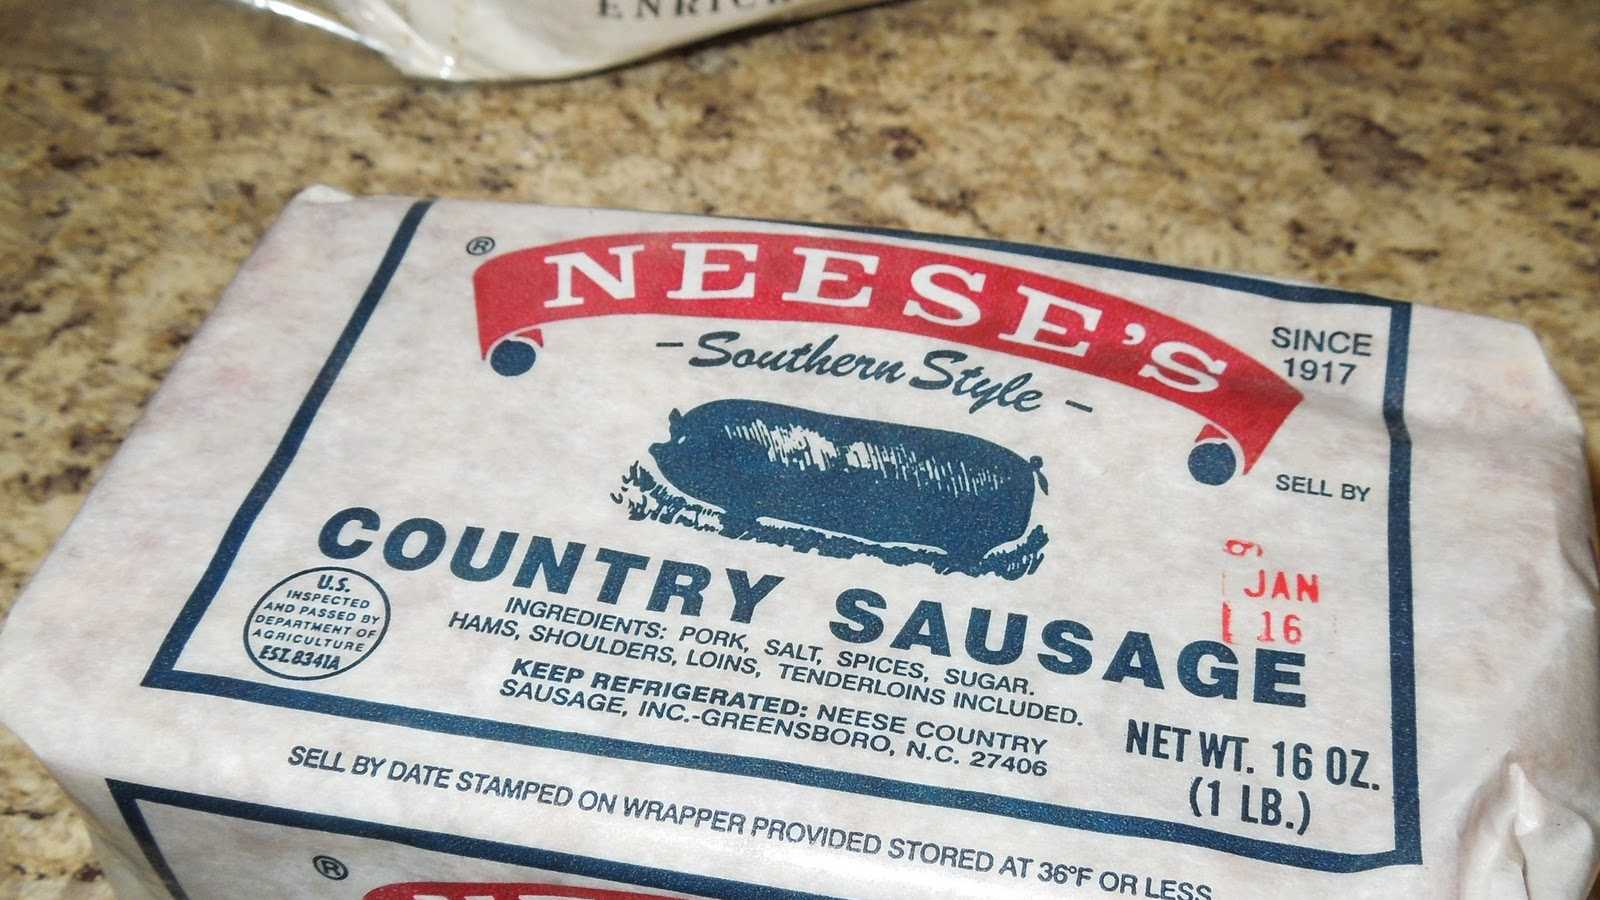 1.Neese's Country Sausage